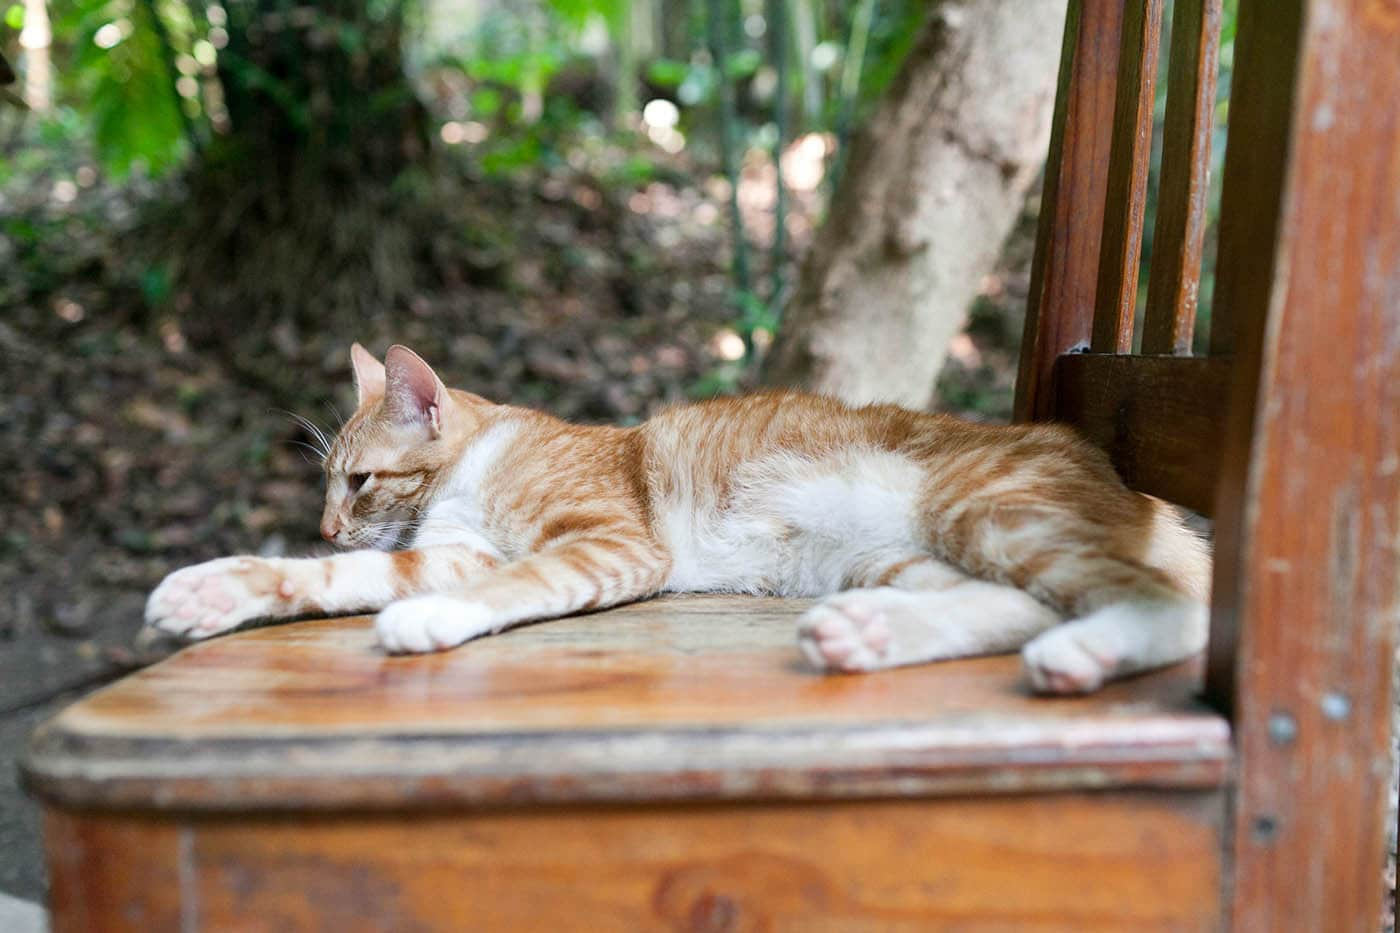 Hostel cat at D&D Brewery at Lago de Yojoa, Honduras.